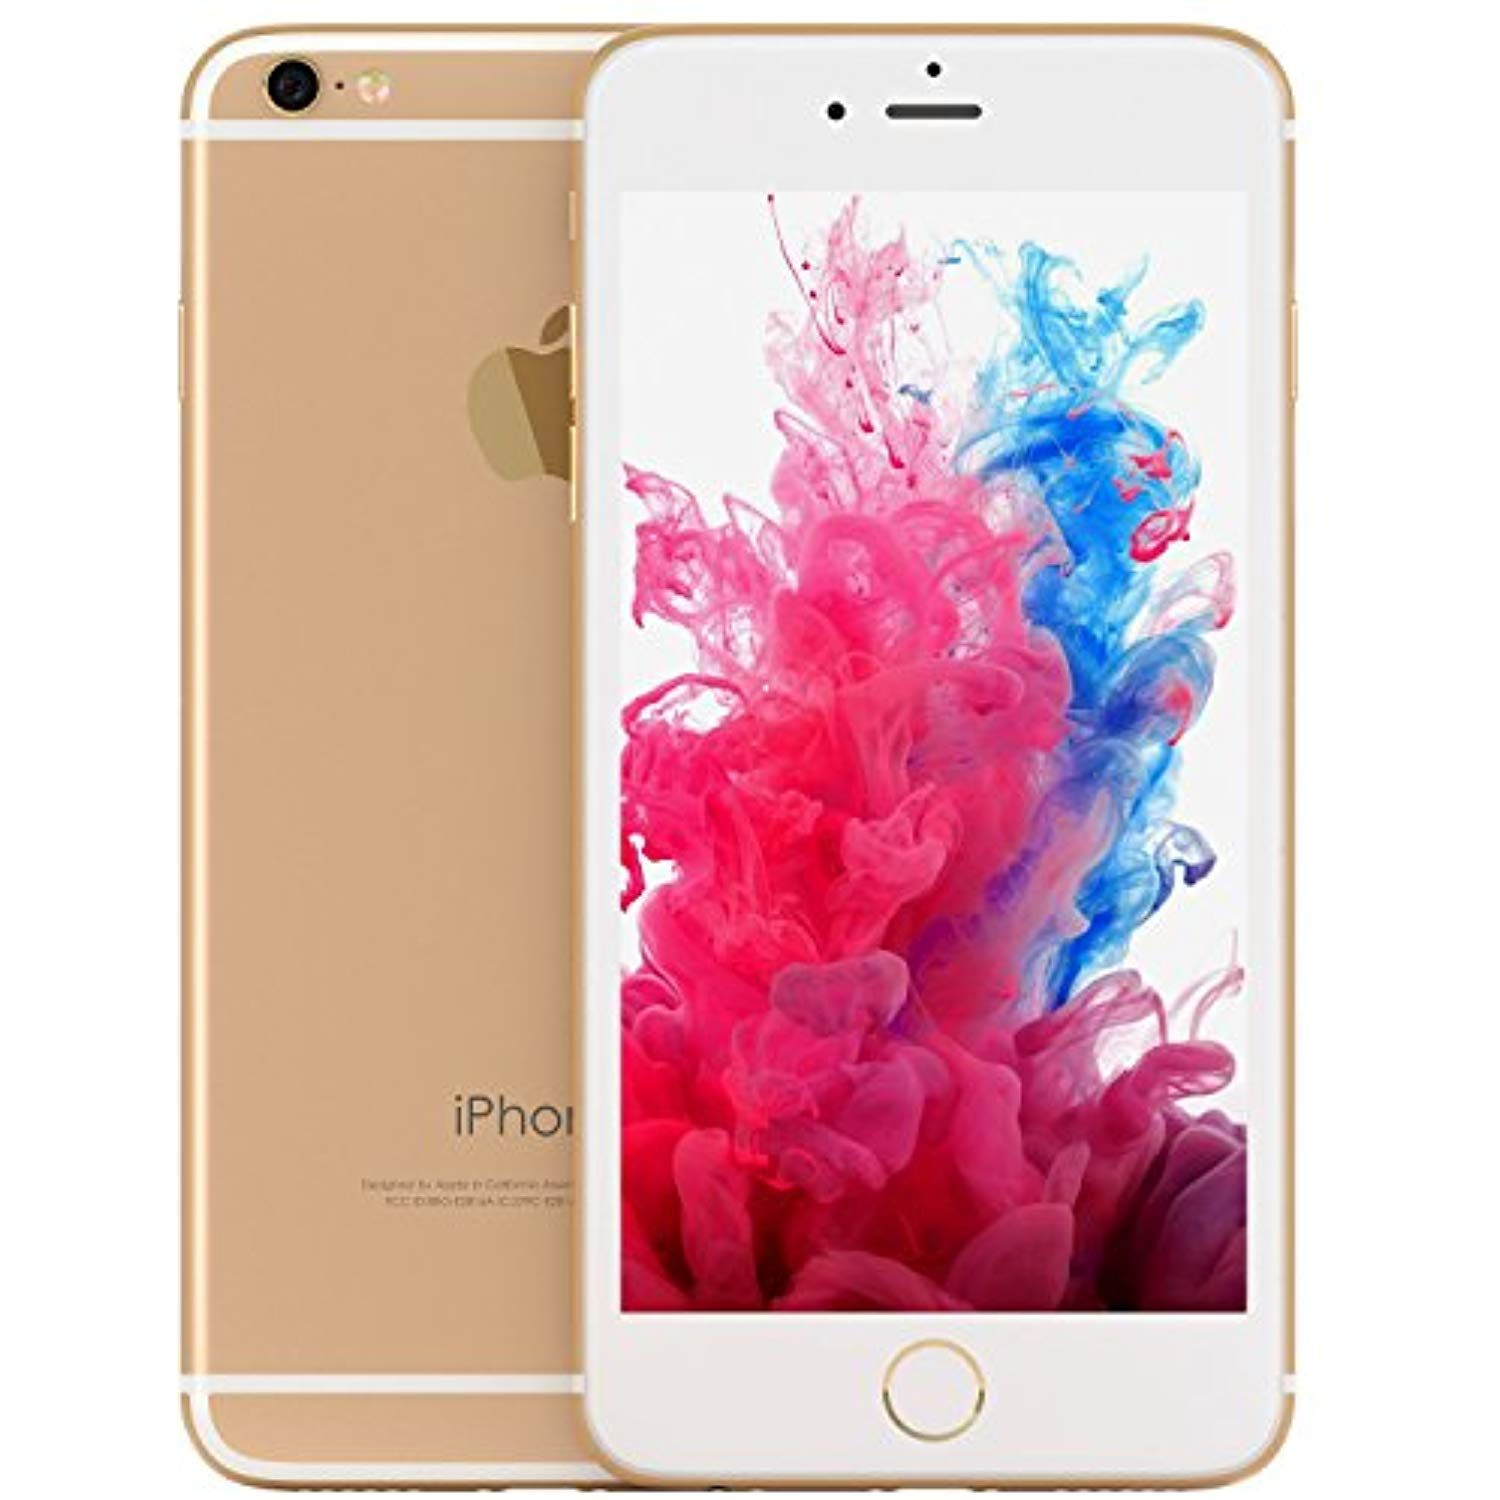 Apple iphone 6 47inch 16gb unlocked smartphone for all